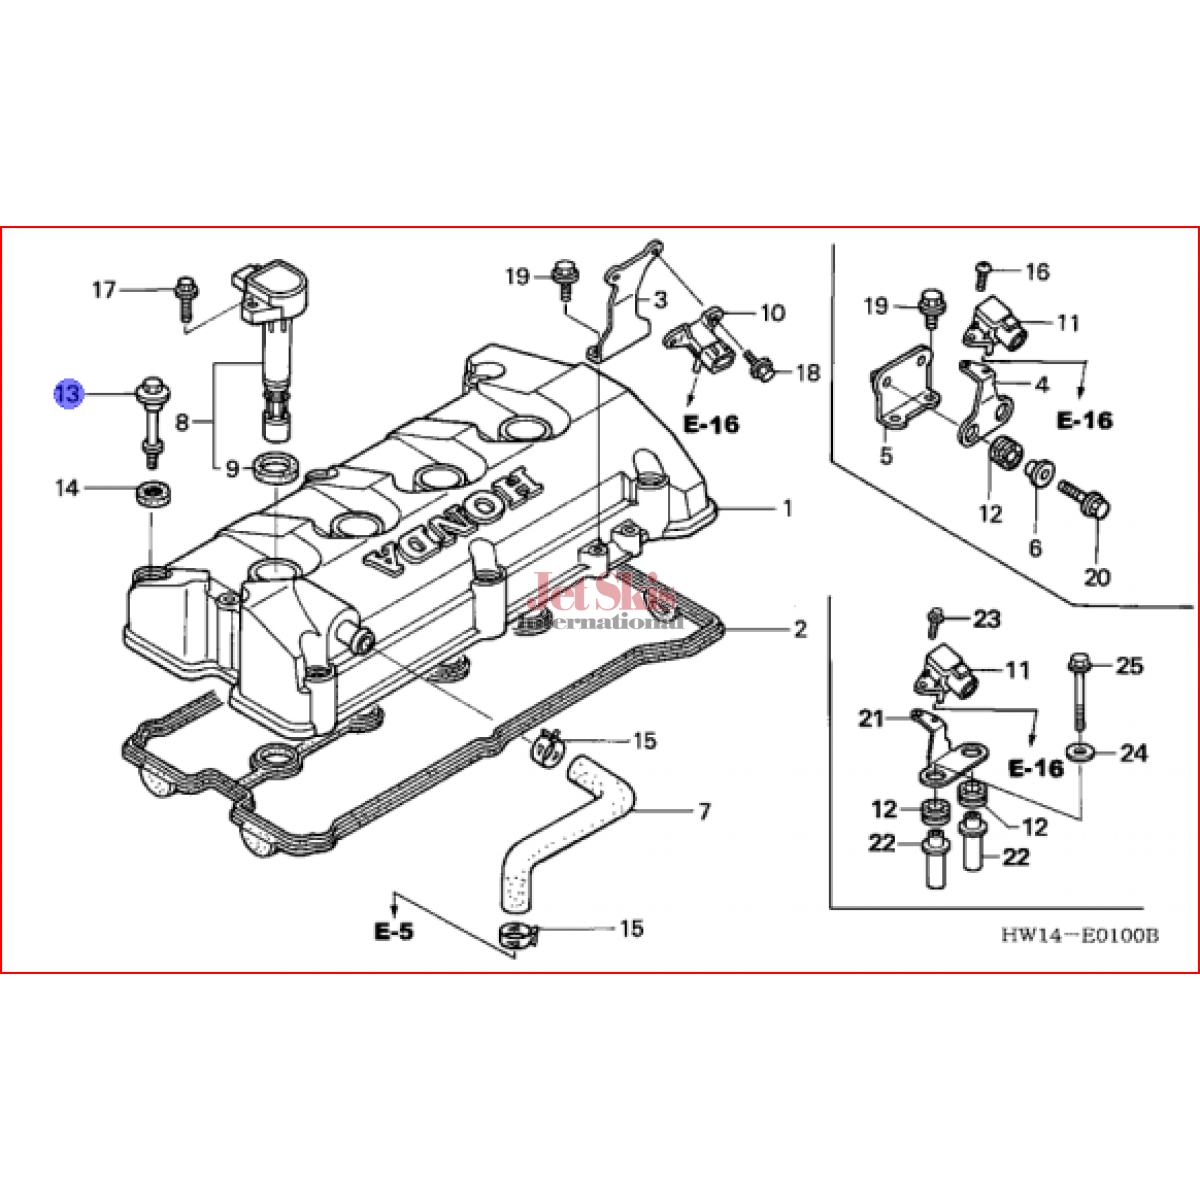 Gy6 8 Pole Stator Wiring Diagram on gy6 stator wiring diagram